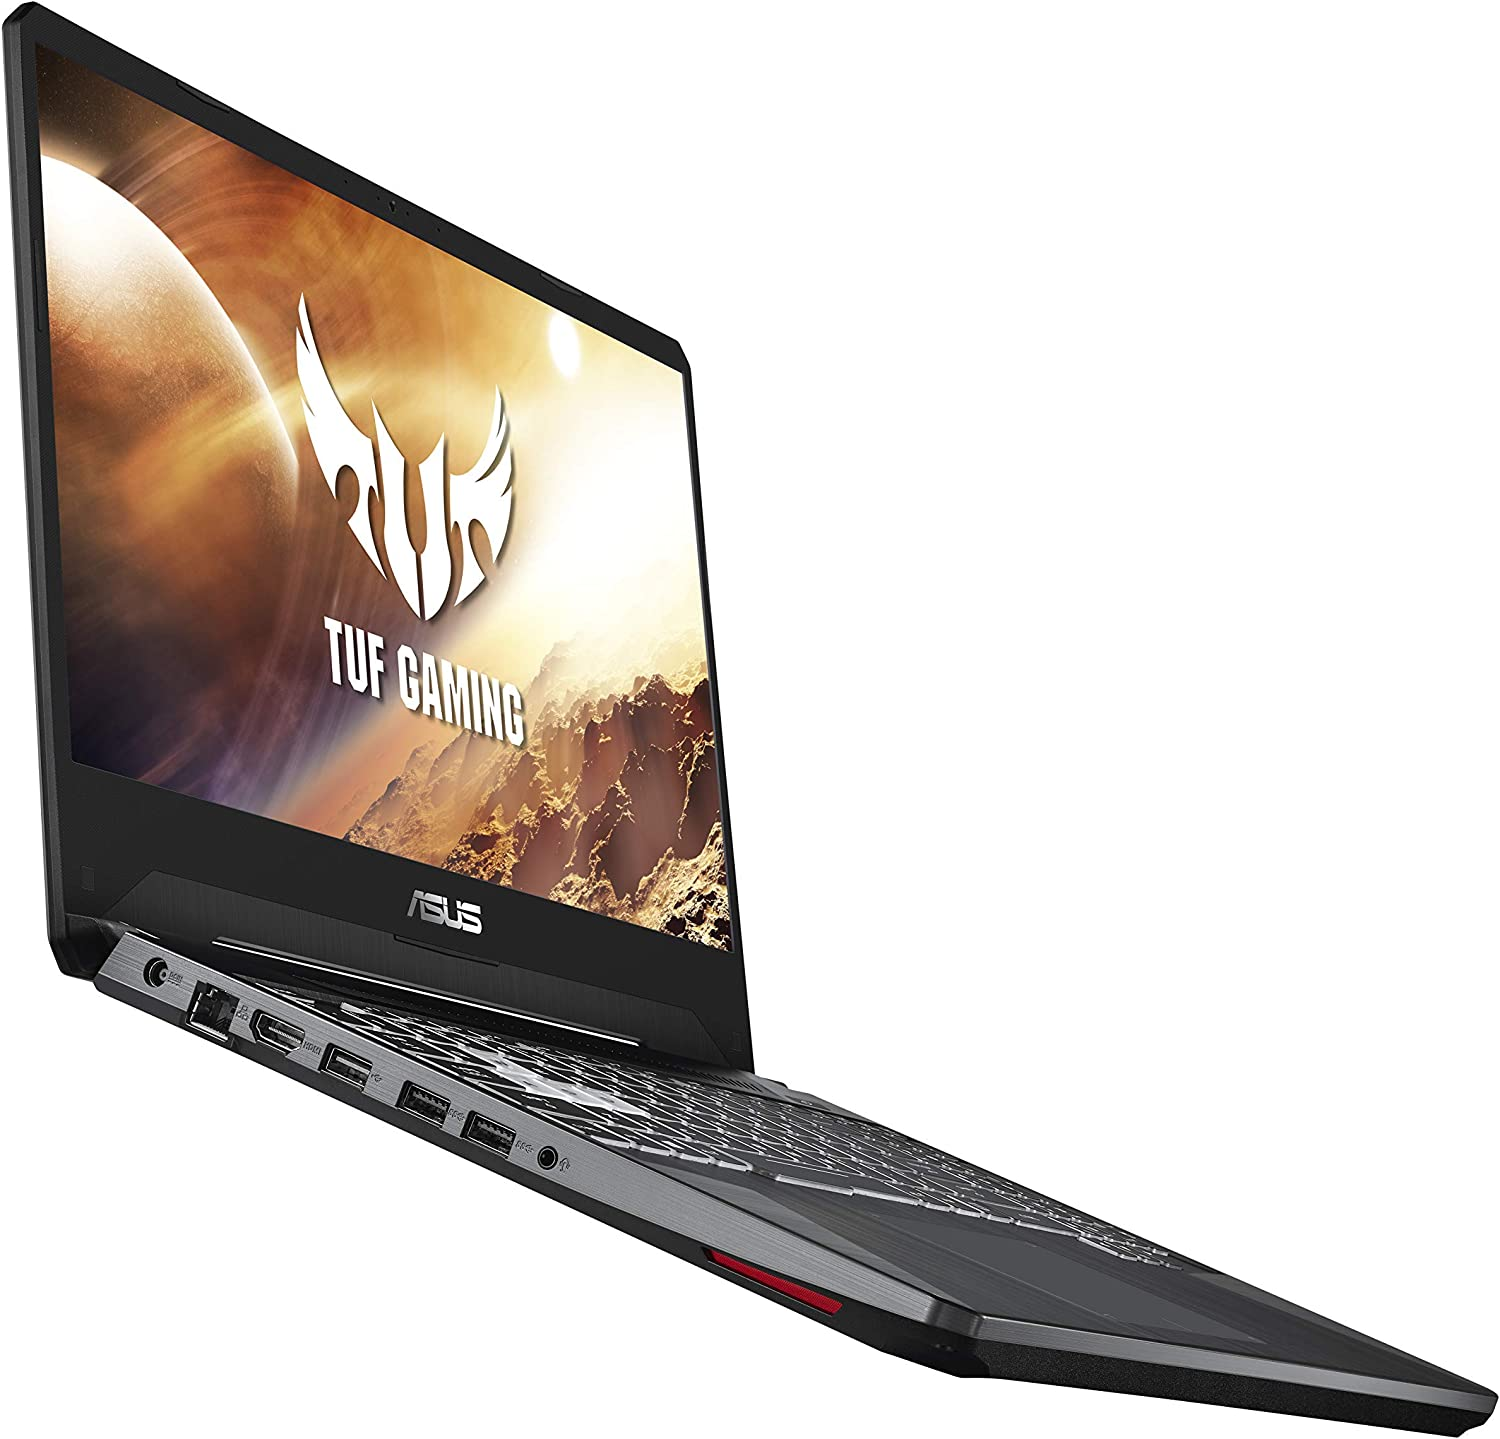 Asus TUF FX505DT Gaming Laptop, 15.6 inches 120Hz Full HD, AMD Ryzen 5 R5-3550H Processor, GeForce GTX 1650 Graphics, 8GB DDR4, 256GB PCIe SSD, Gigabit (Renewed)